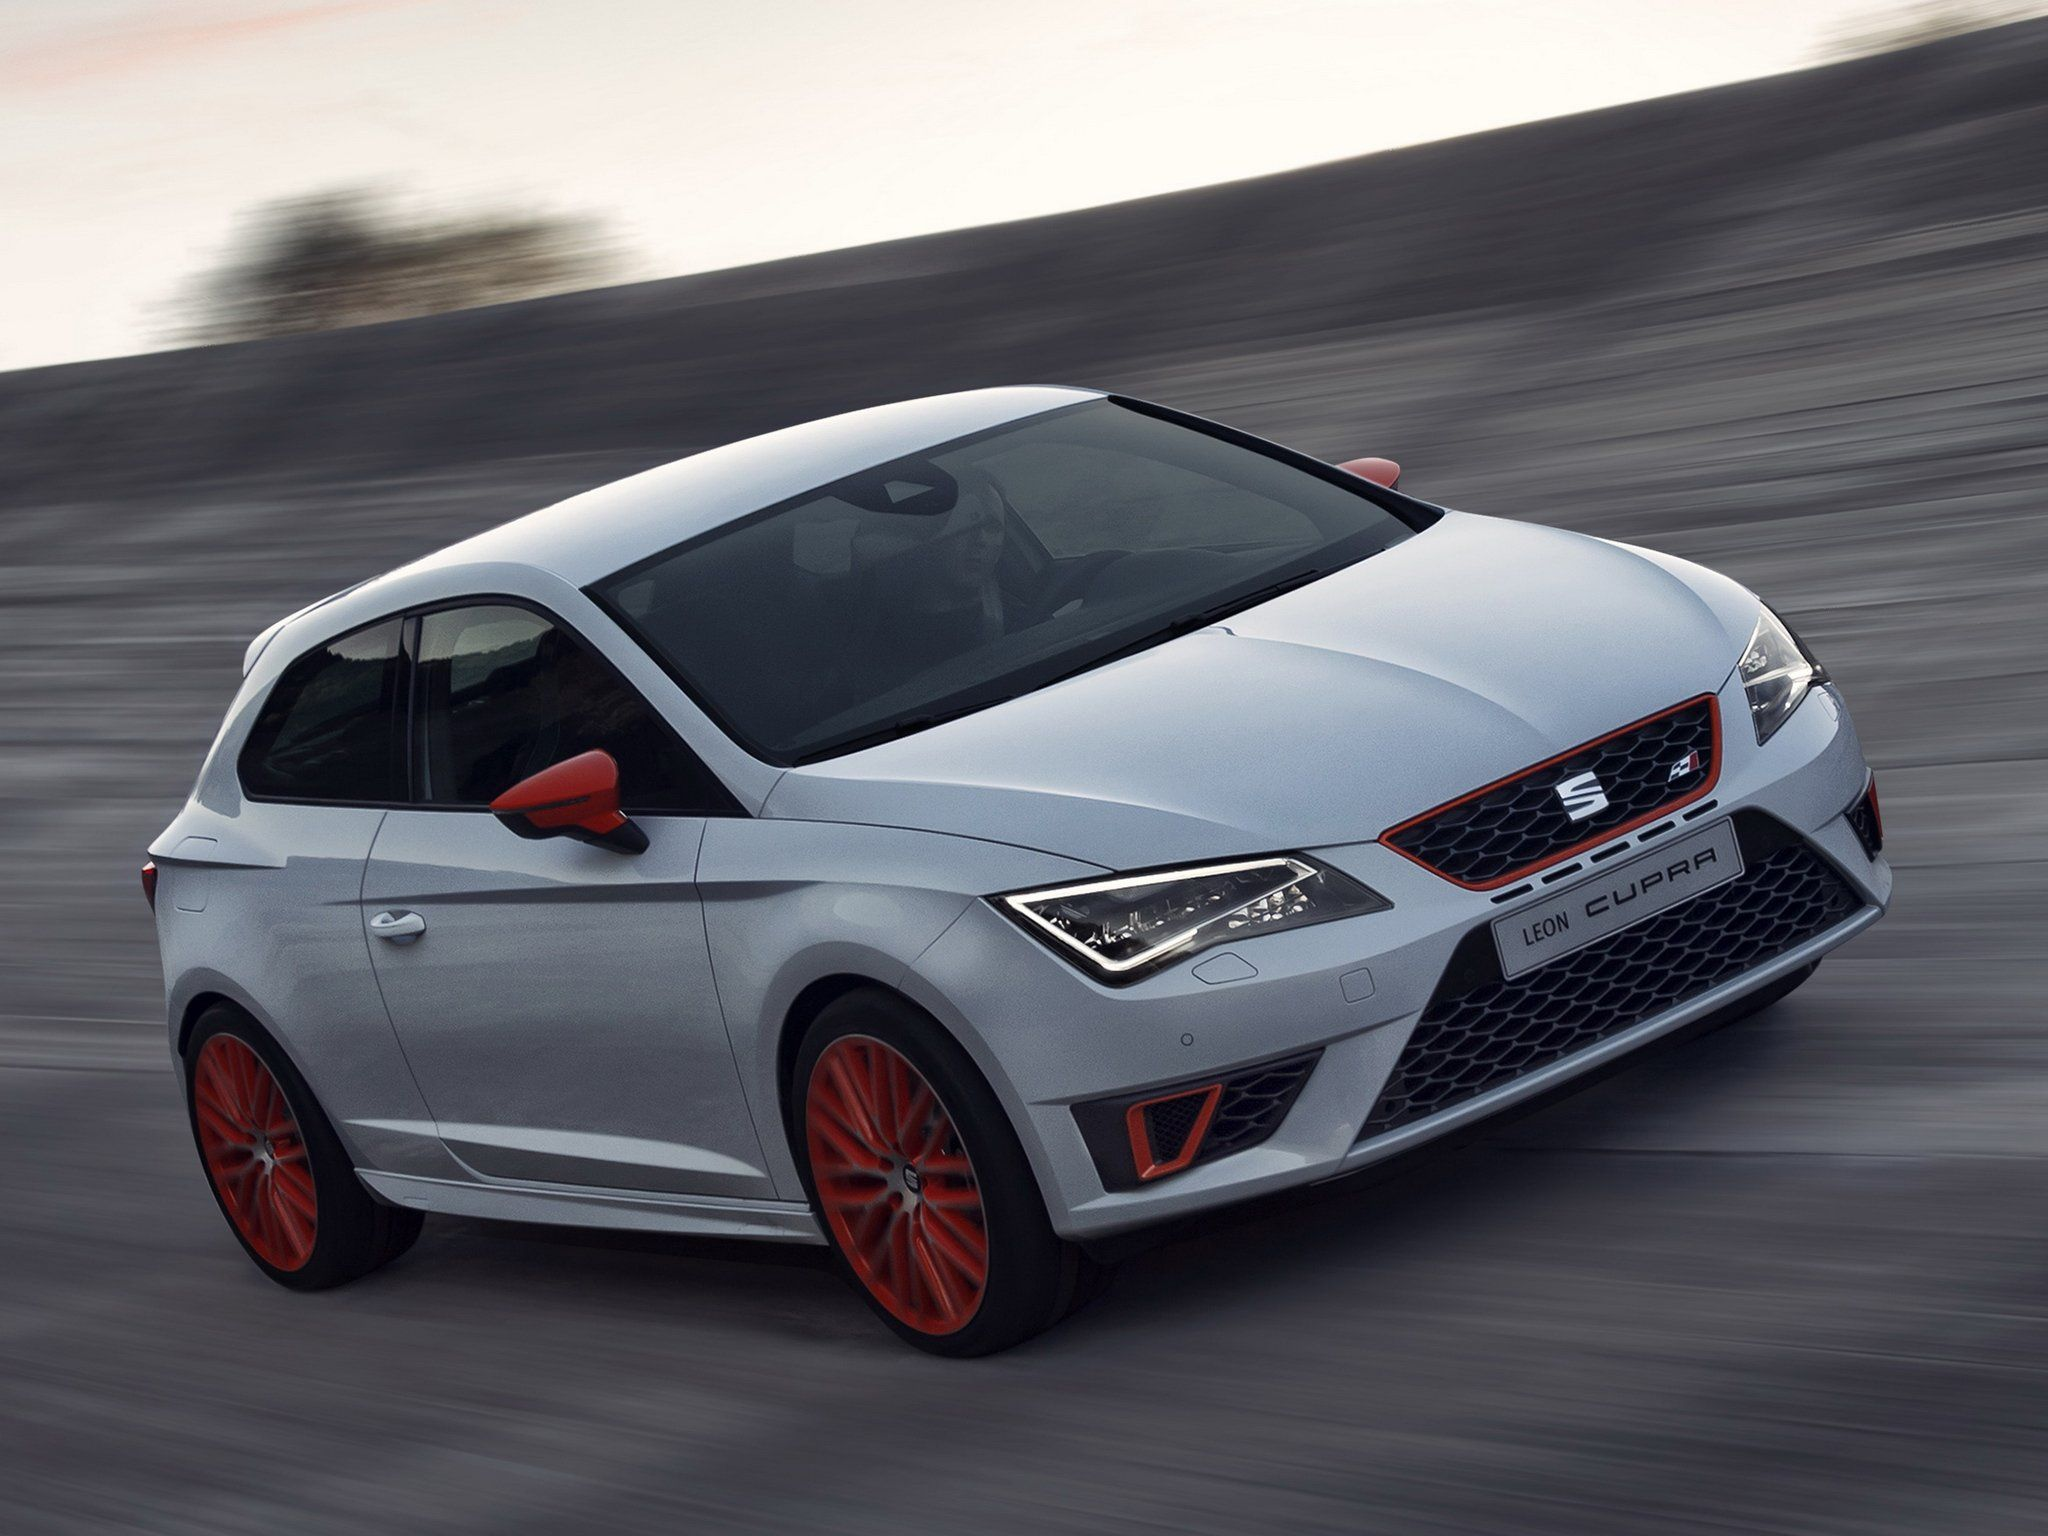 2015 je design seat leon s c cupra 280 5 f tuning wallpaper all wallpapers pinterest top. Black Bedroom Furniture Sets. Home Design Ideas